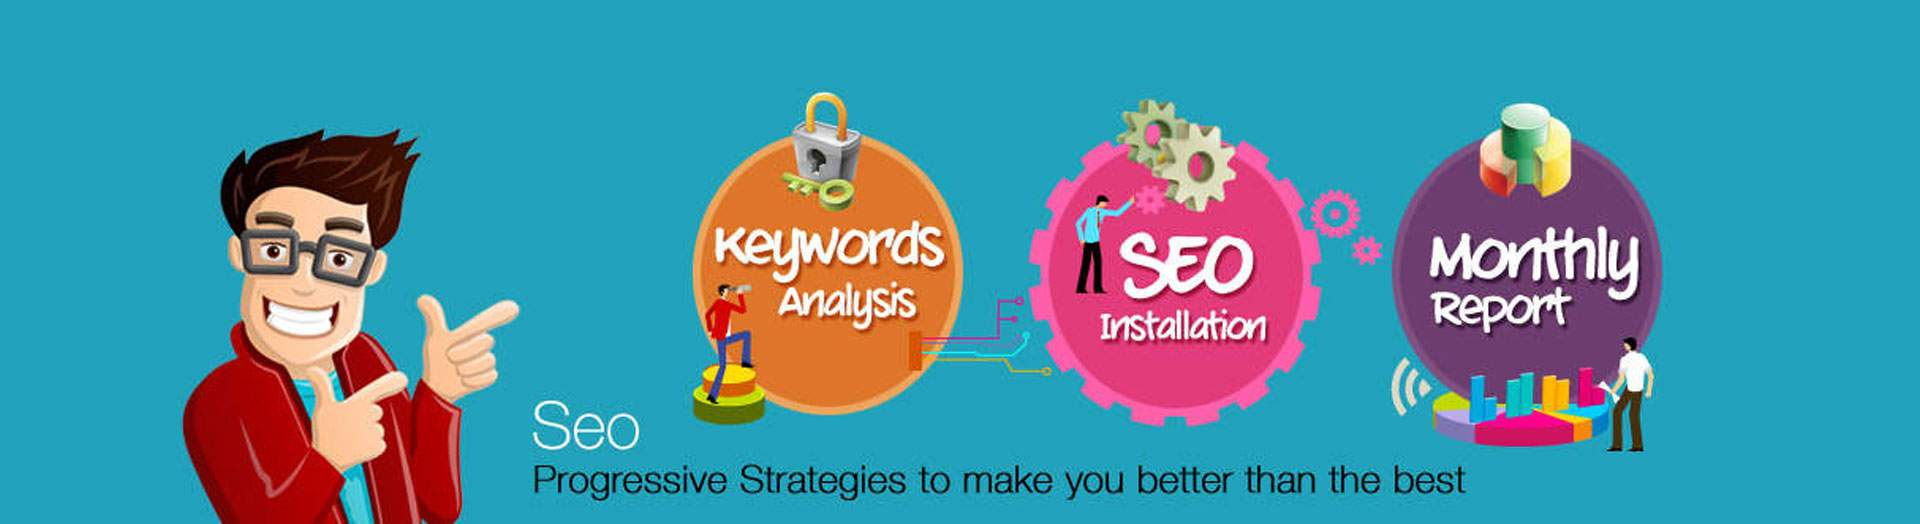 SEO management services